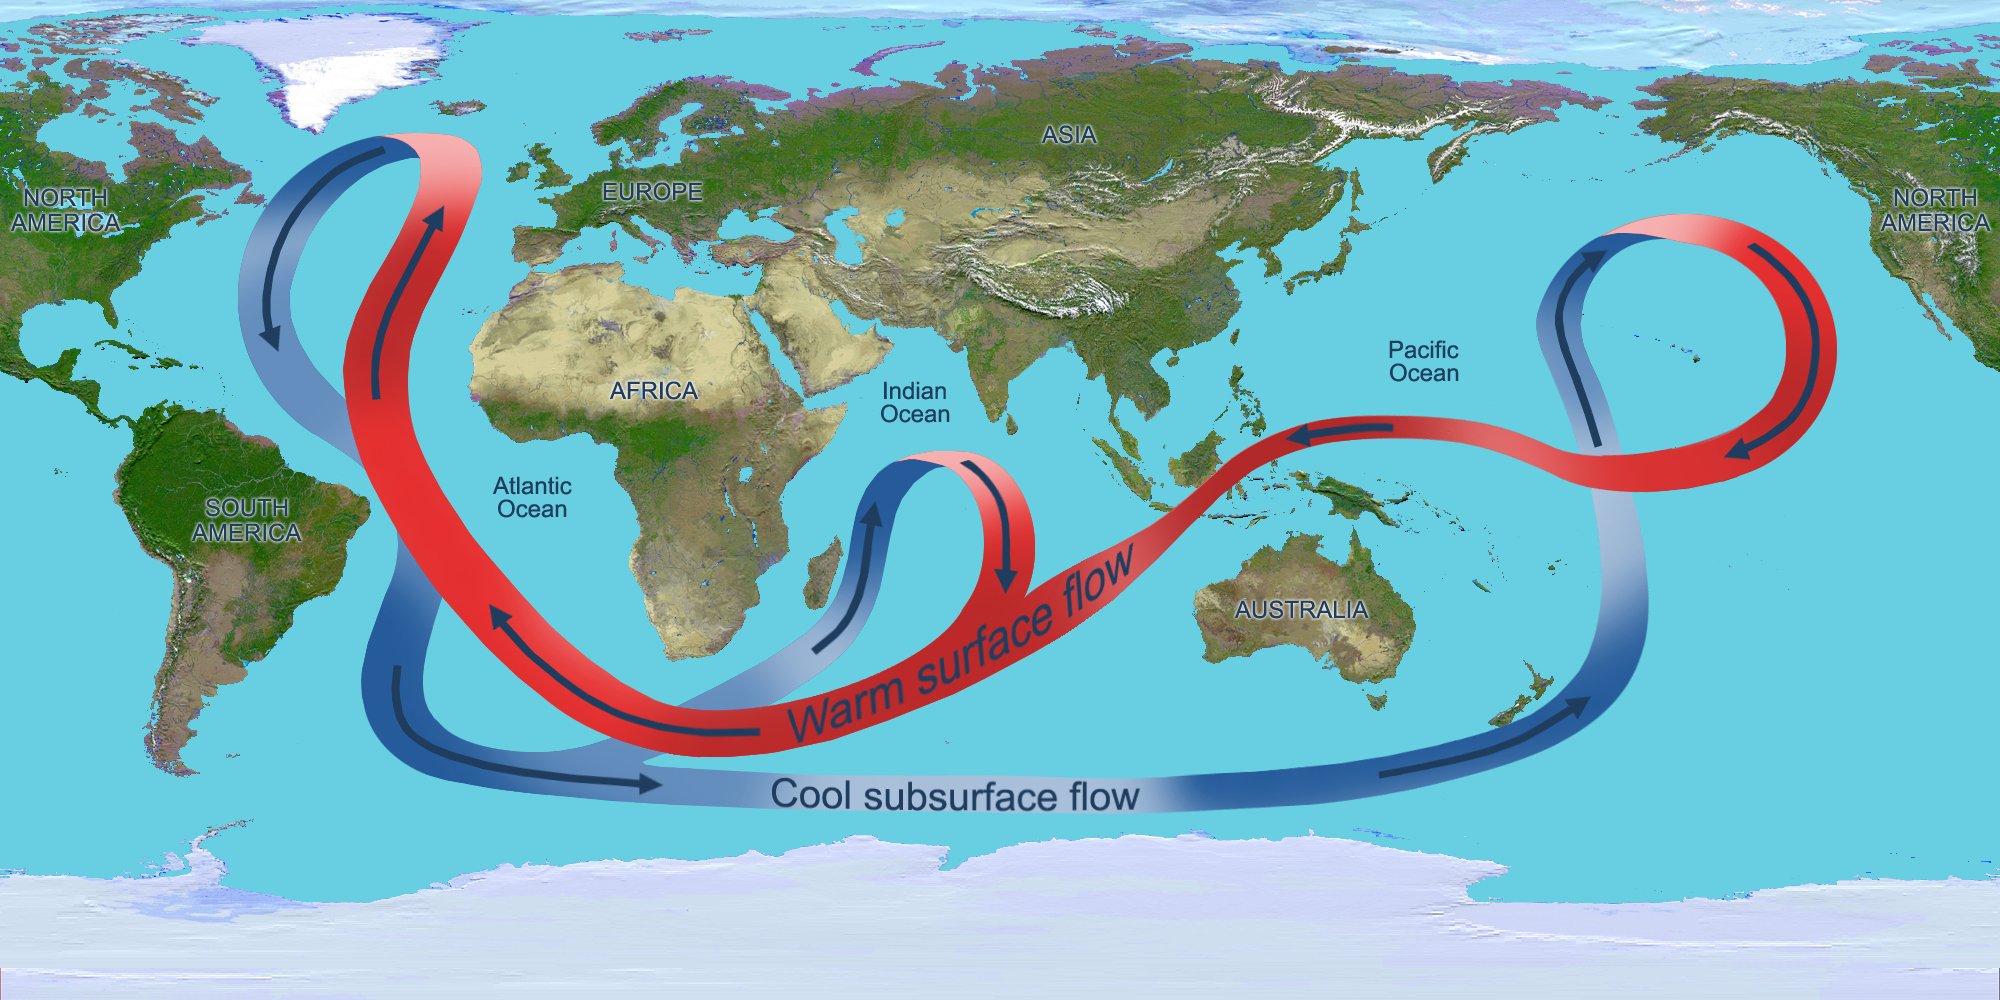 The overturning circulation of the global ocean. Atlantic circulation, on the left side of the image, is a significant driver of this entire cycle.